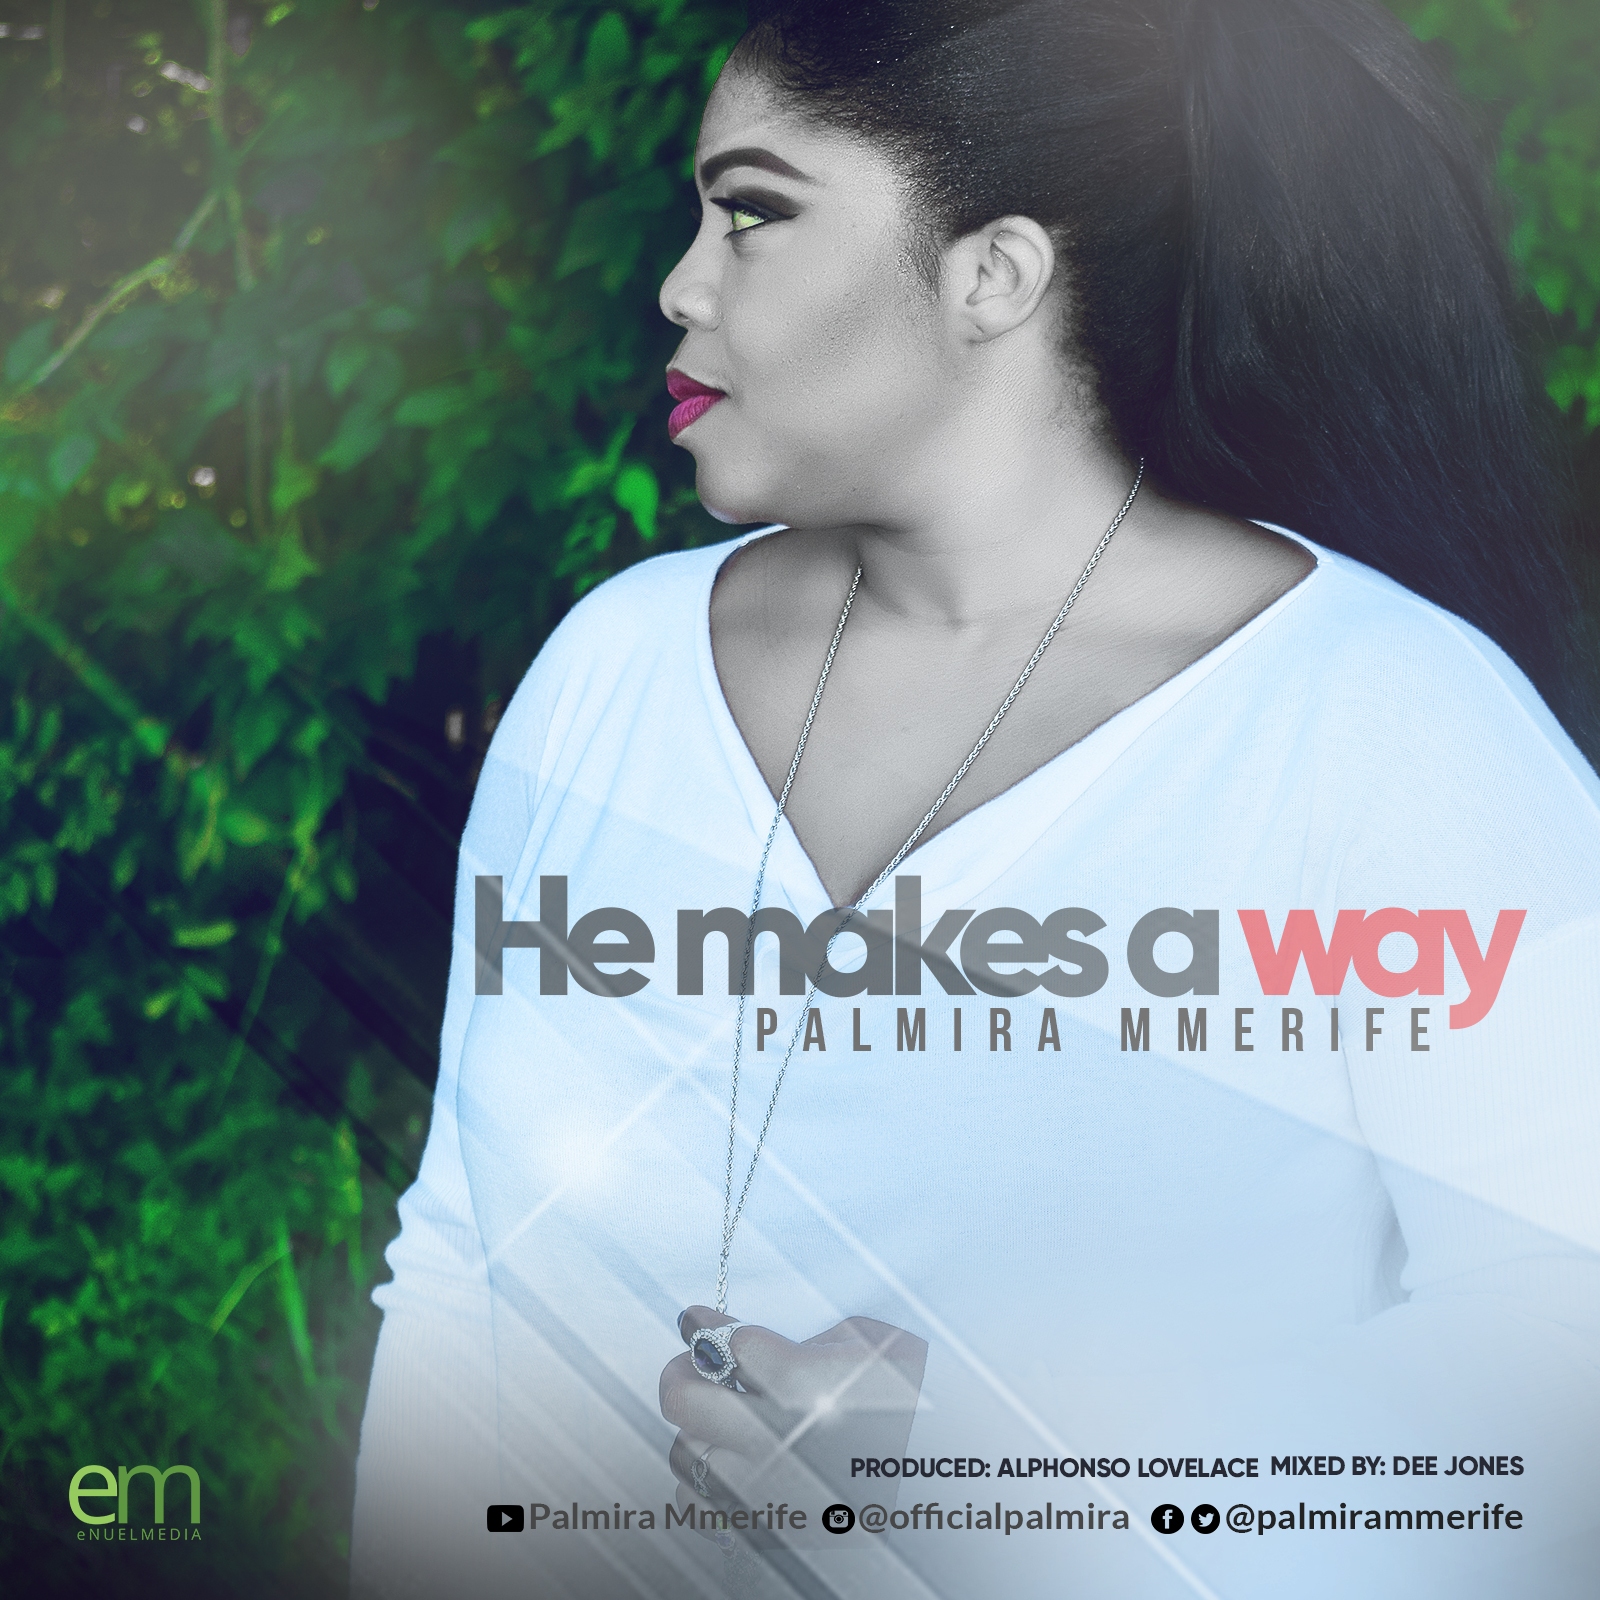 Music: He Makes A Way ~ Palmira Mmerife [@PalmiraMmerife]